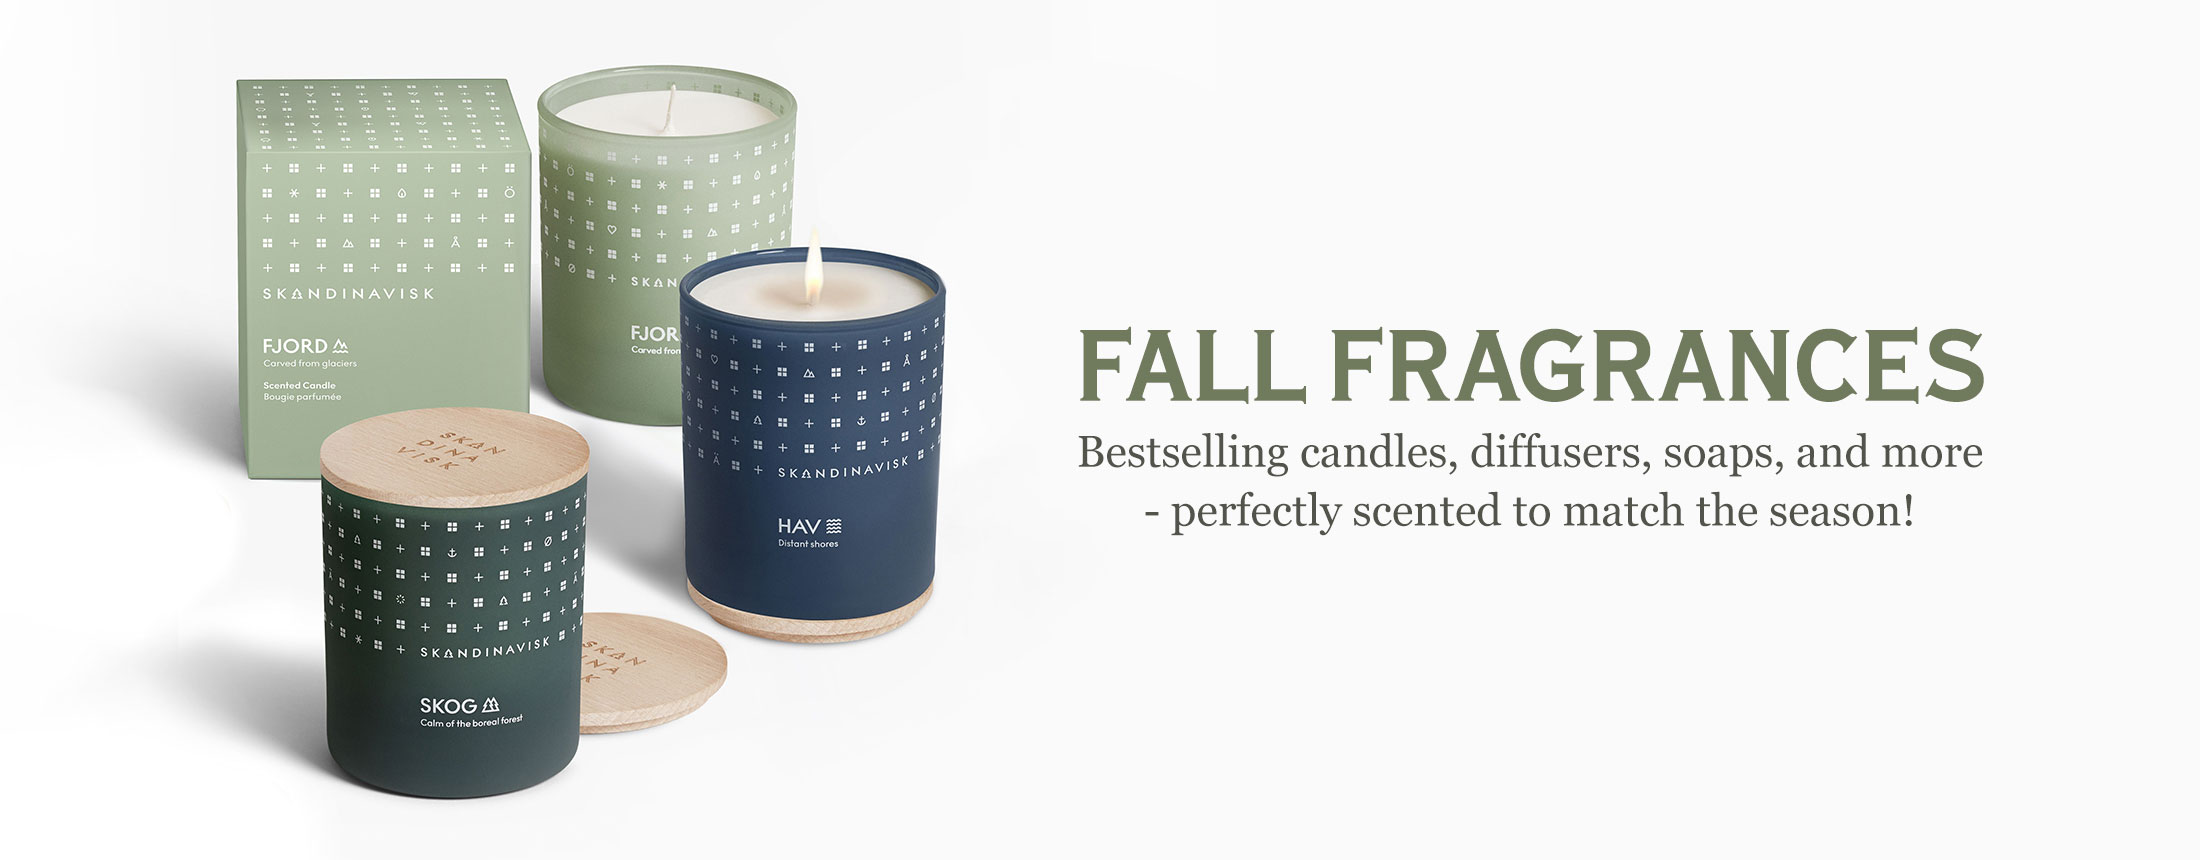 Best Selling Candles For Fall